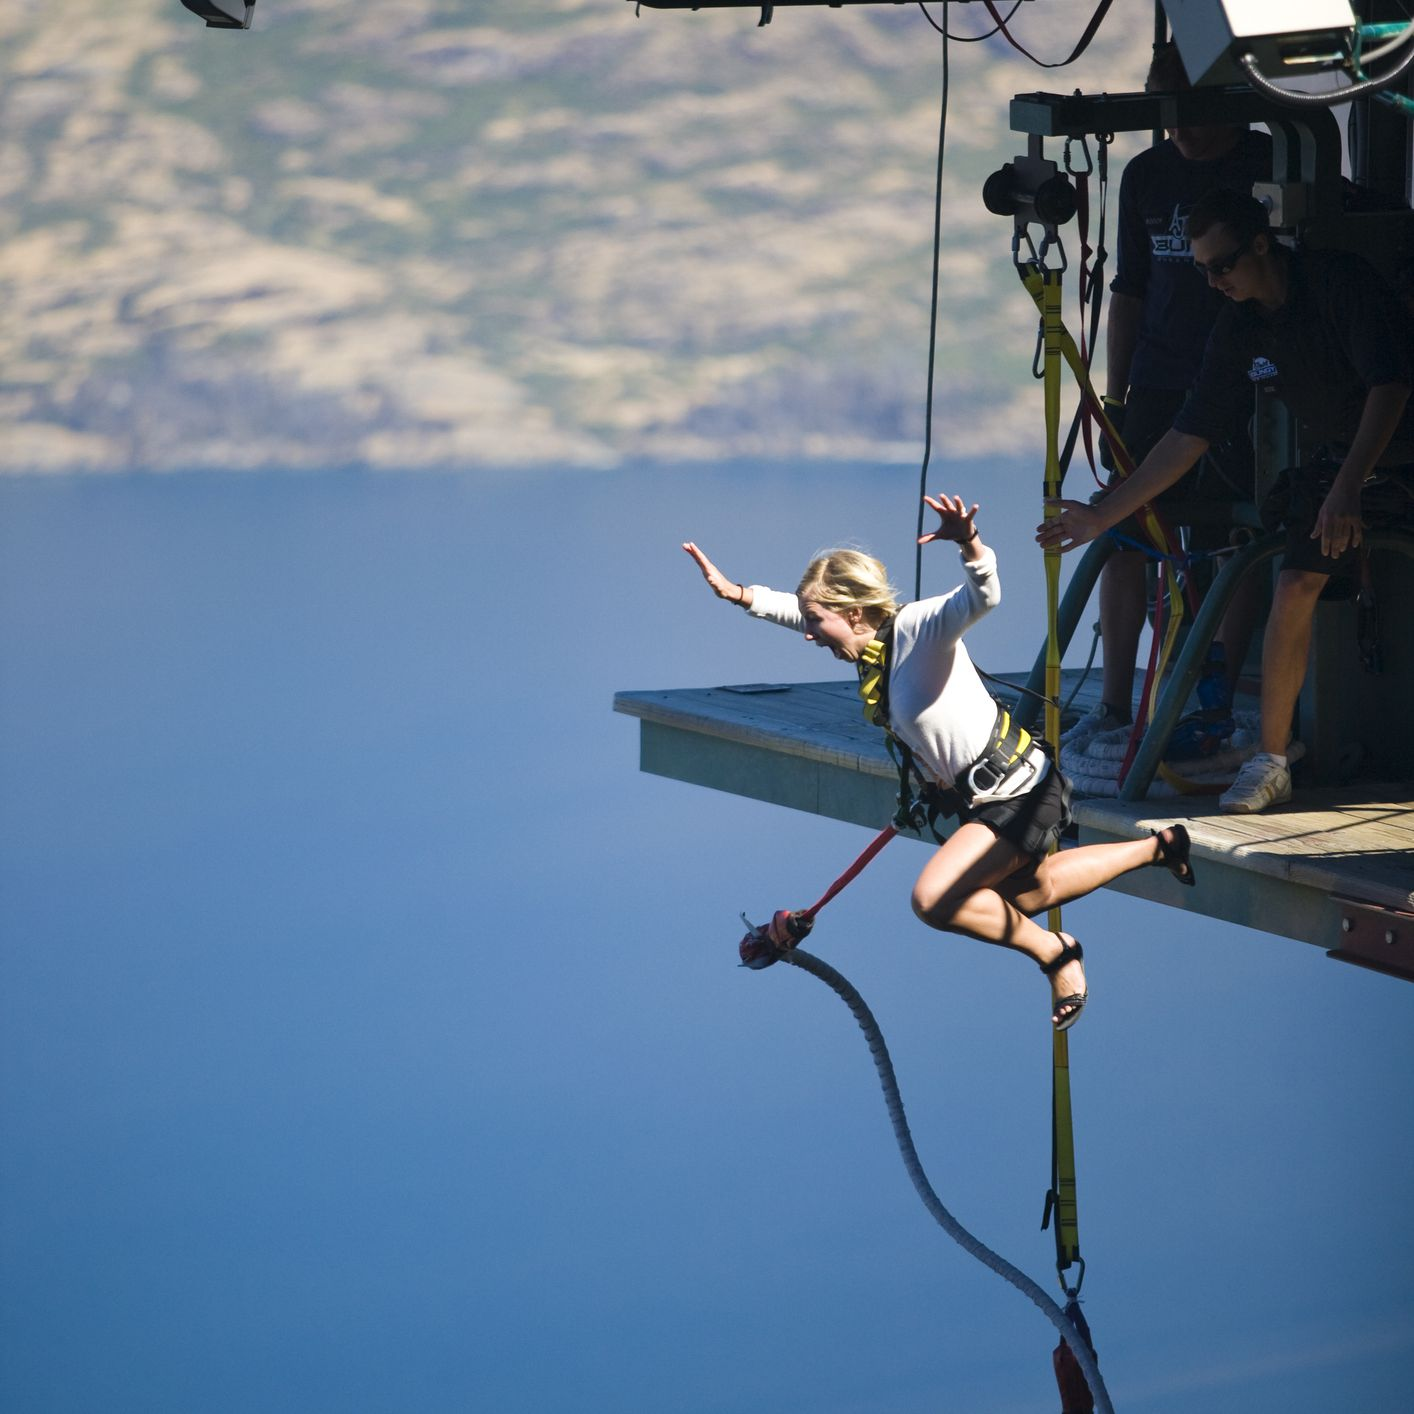 blonde woman jumping off platform with bungee cord attached and blue lake below